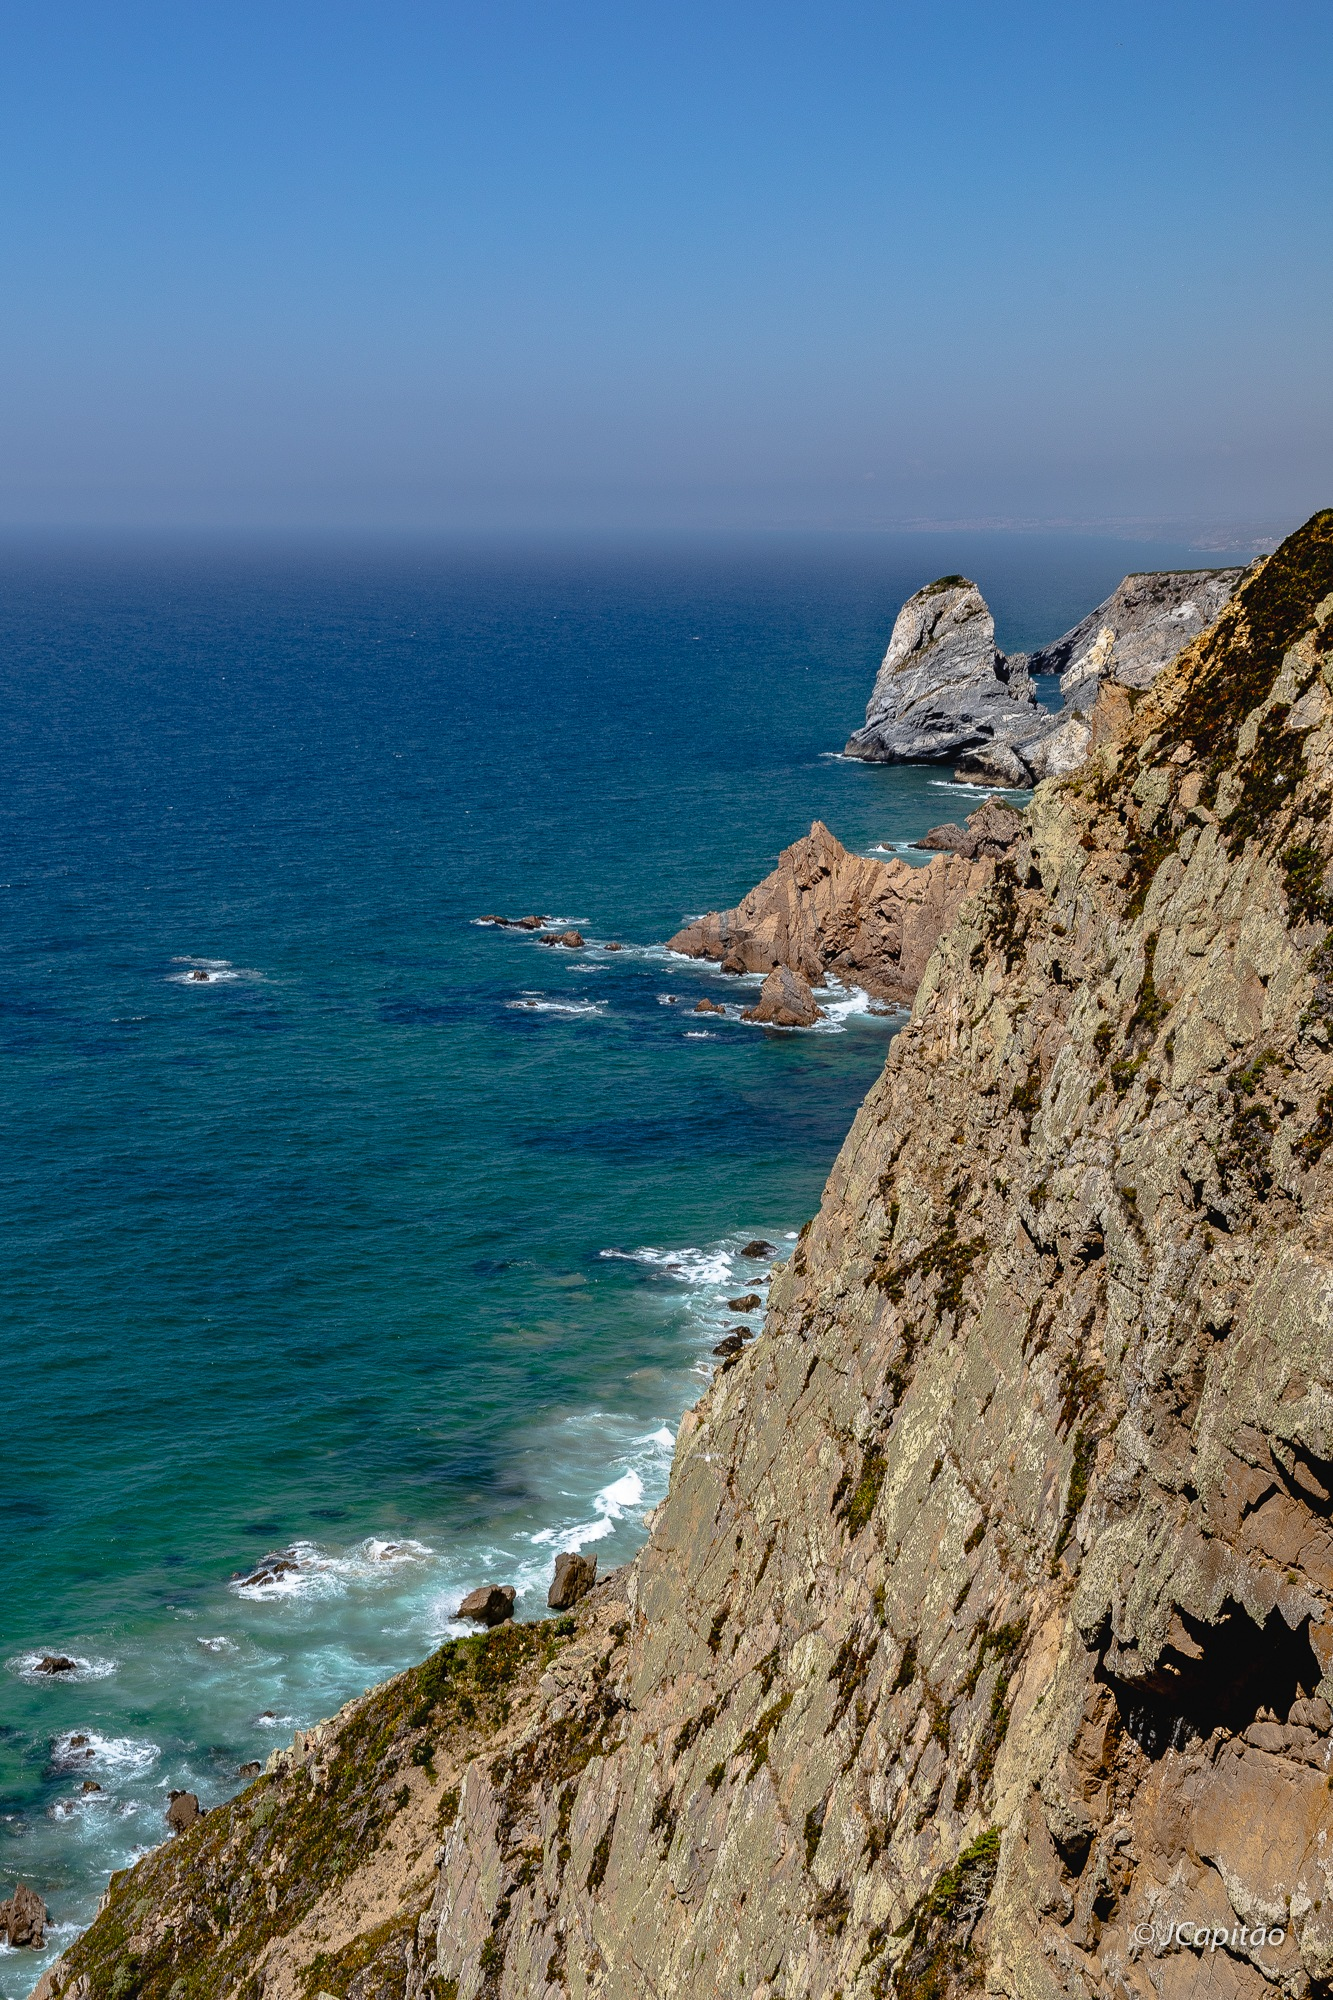 Where the land ends and the sea starts by Joaquim Capitao